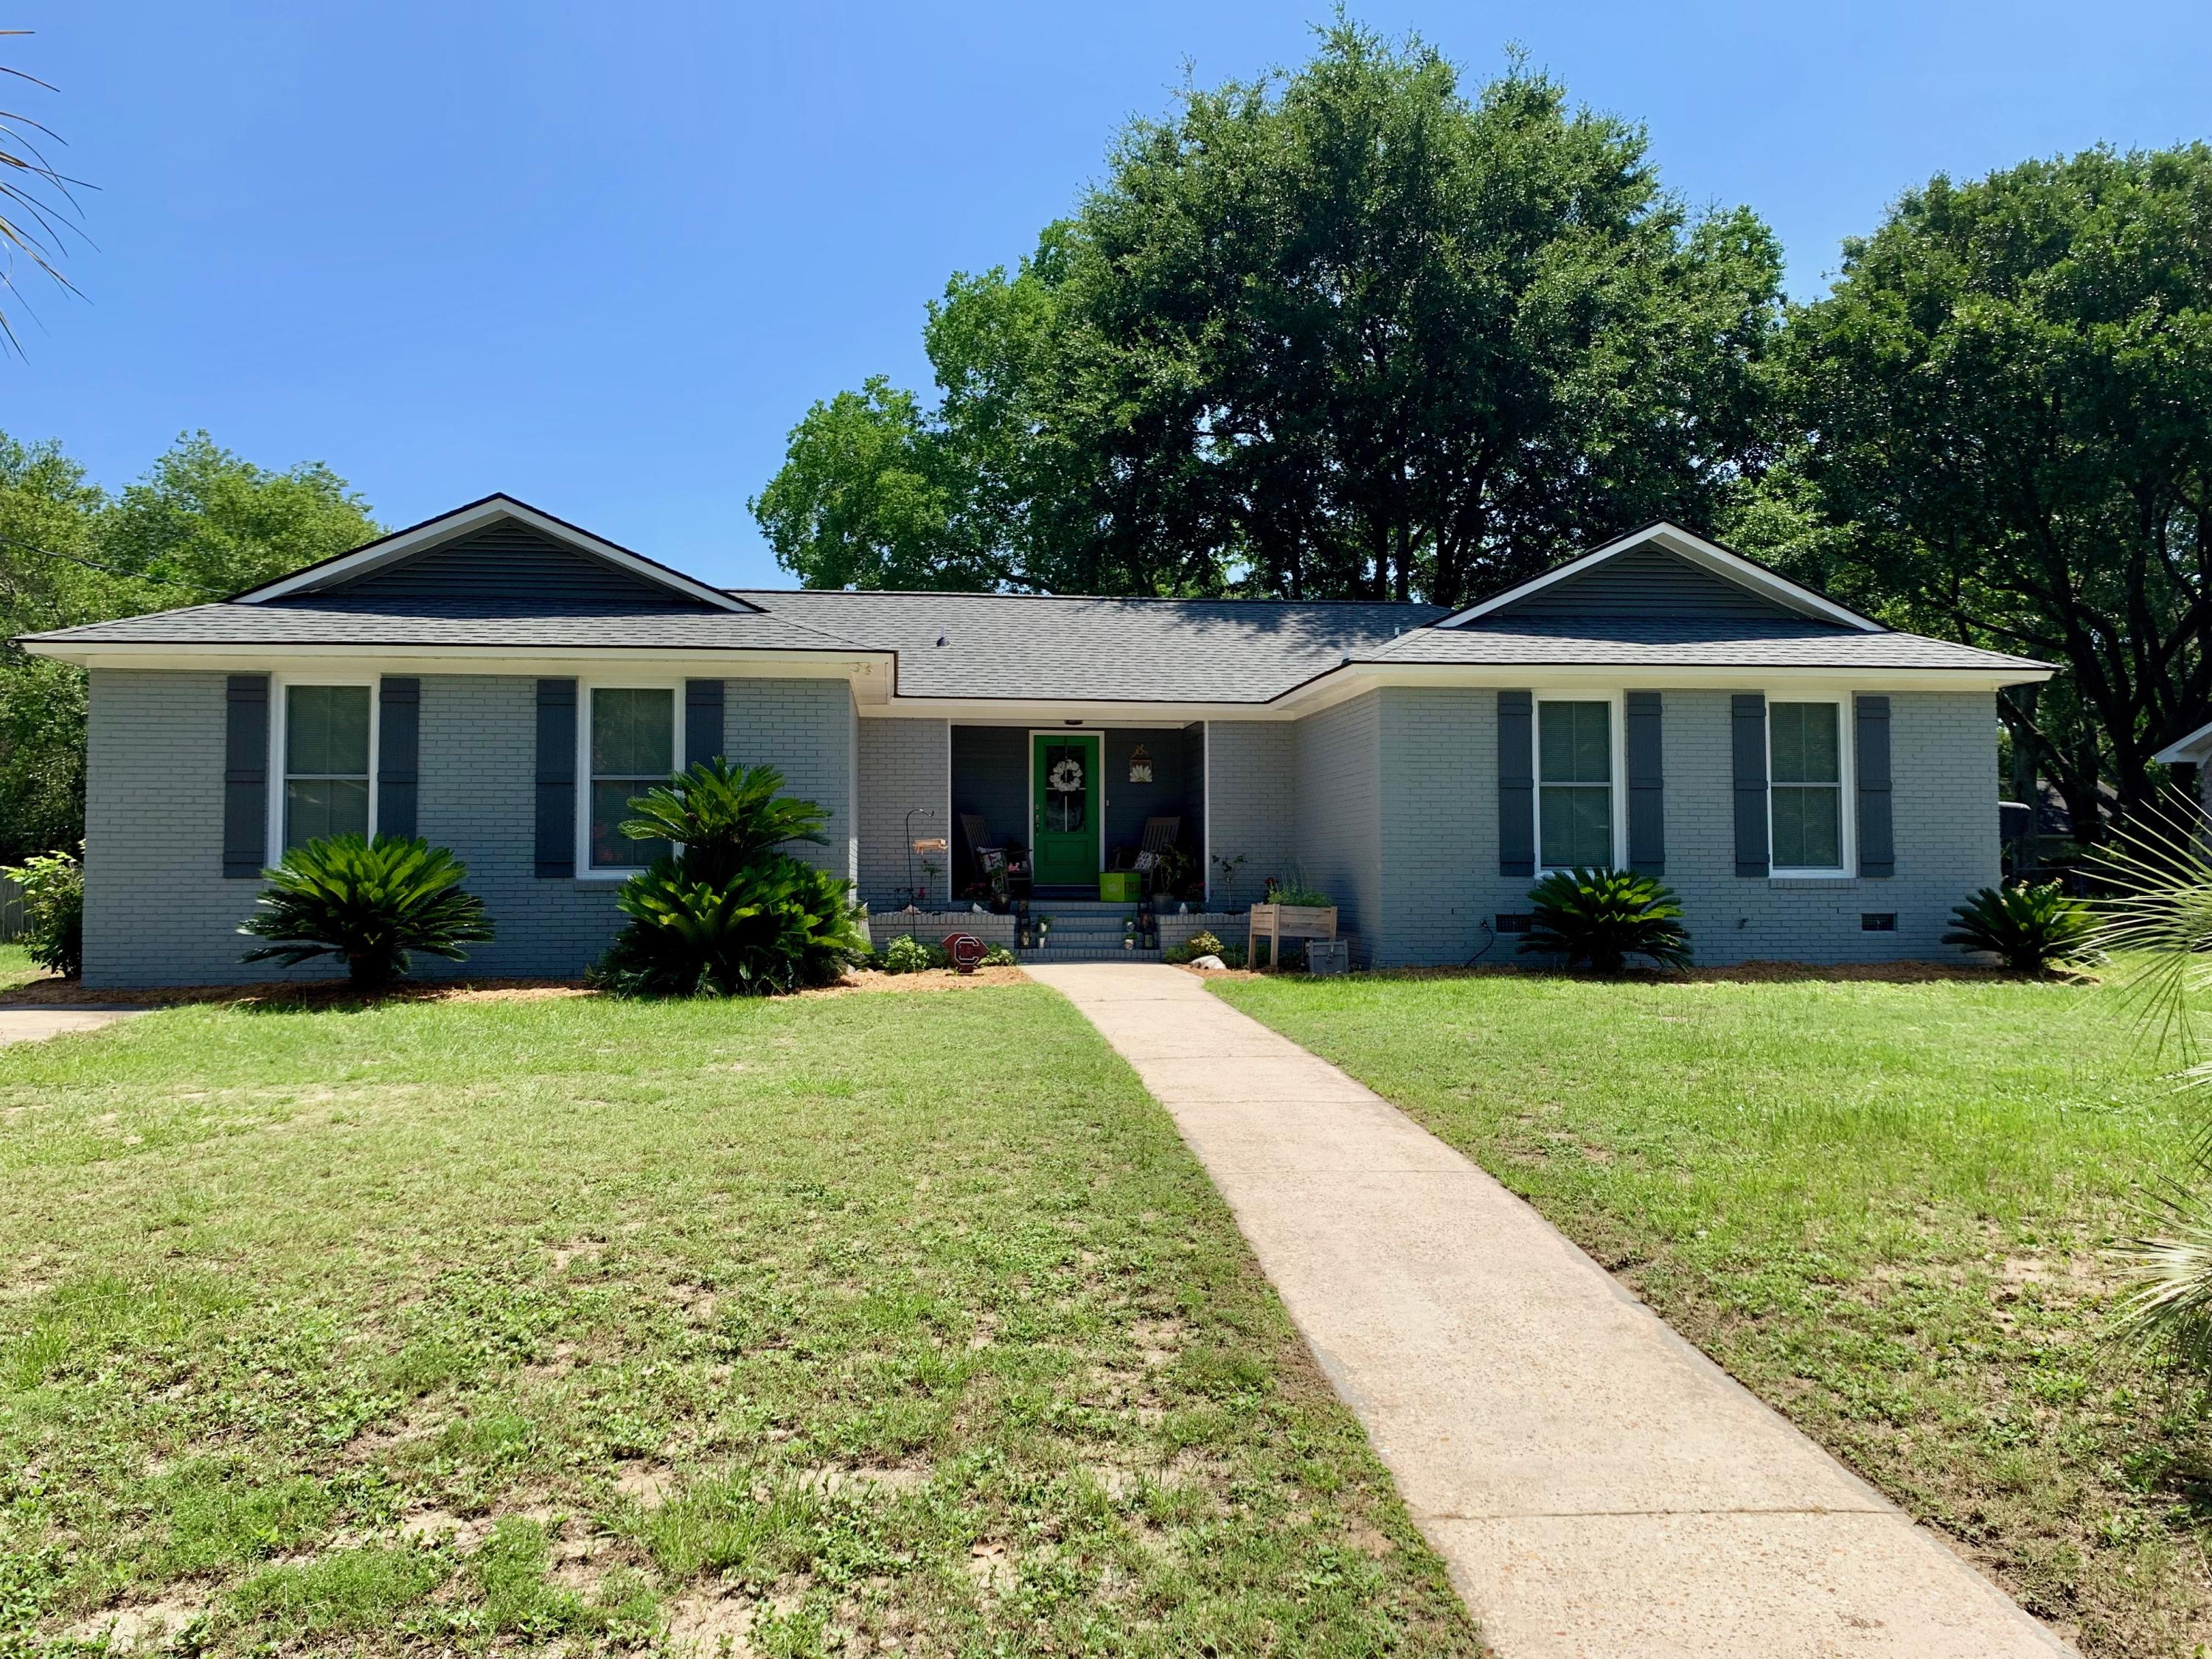 LOCATION does not get much better than this in the heart of Mt Pleasant! Walk or bike ride to Shem Creek and the Ravenel Bridge and drop your boat in the water at the community boat ramp! NO HOA! This 4 BDDR brick ranch was renovated in 2017....new windows, new roof, new flooring, new kitchen and new baths with beautiful cabinetry, tile shower/tub surrounds and granite countertops! Add to that TWO family living spaces, a large 2 car detached garage, and a large fenced in back yard with a deck with this wonderful home in the ''heart'' of town! Enjoy one of Mt Pleasant's most sough after neighborhoods in Cooper Estates!